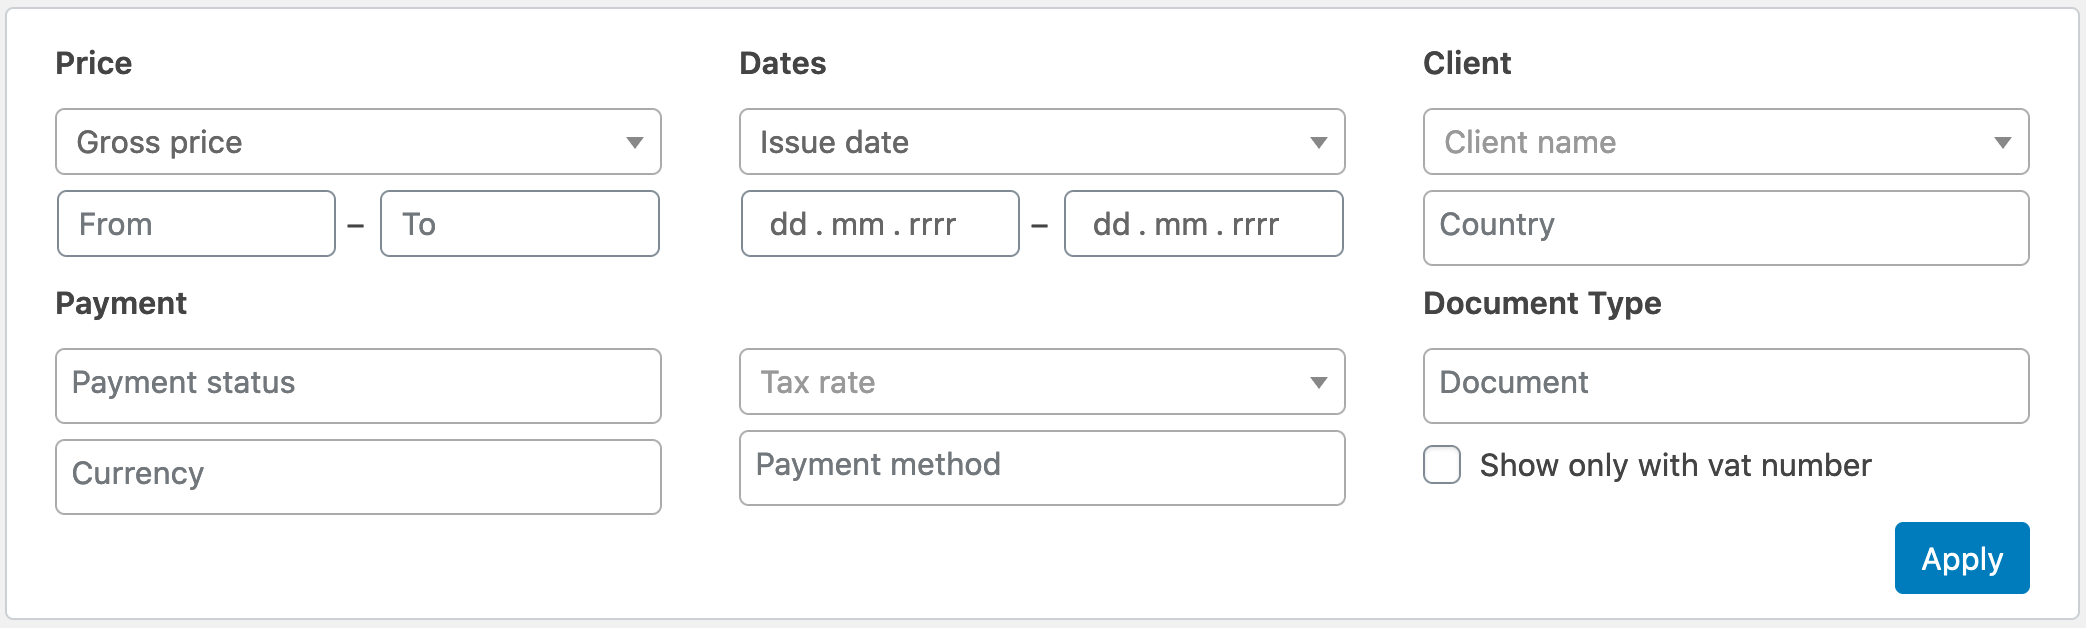 Flexible Invoices Advanced Filters